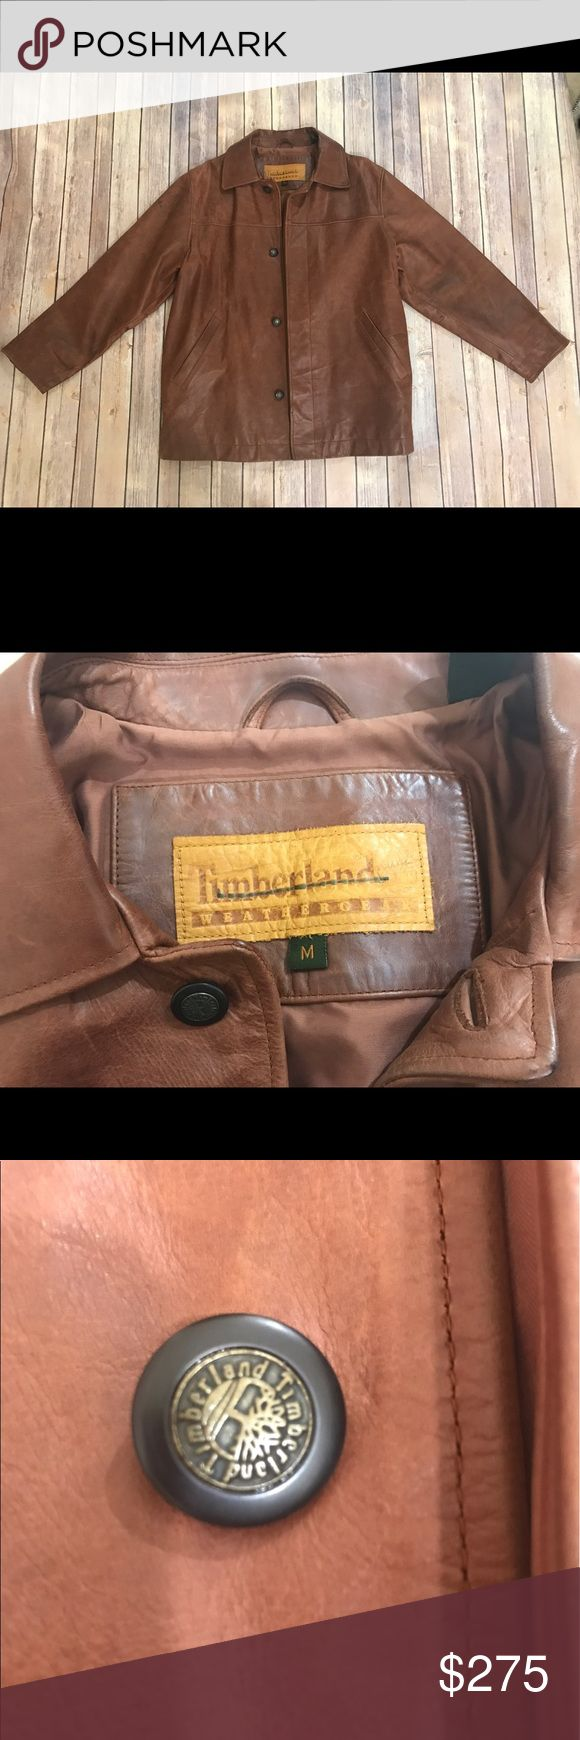 Timberland Men's Leather Coat Basically new only worn once Leather Coat Size Medium Timberland Jackets & Coats